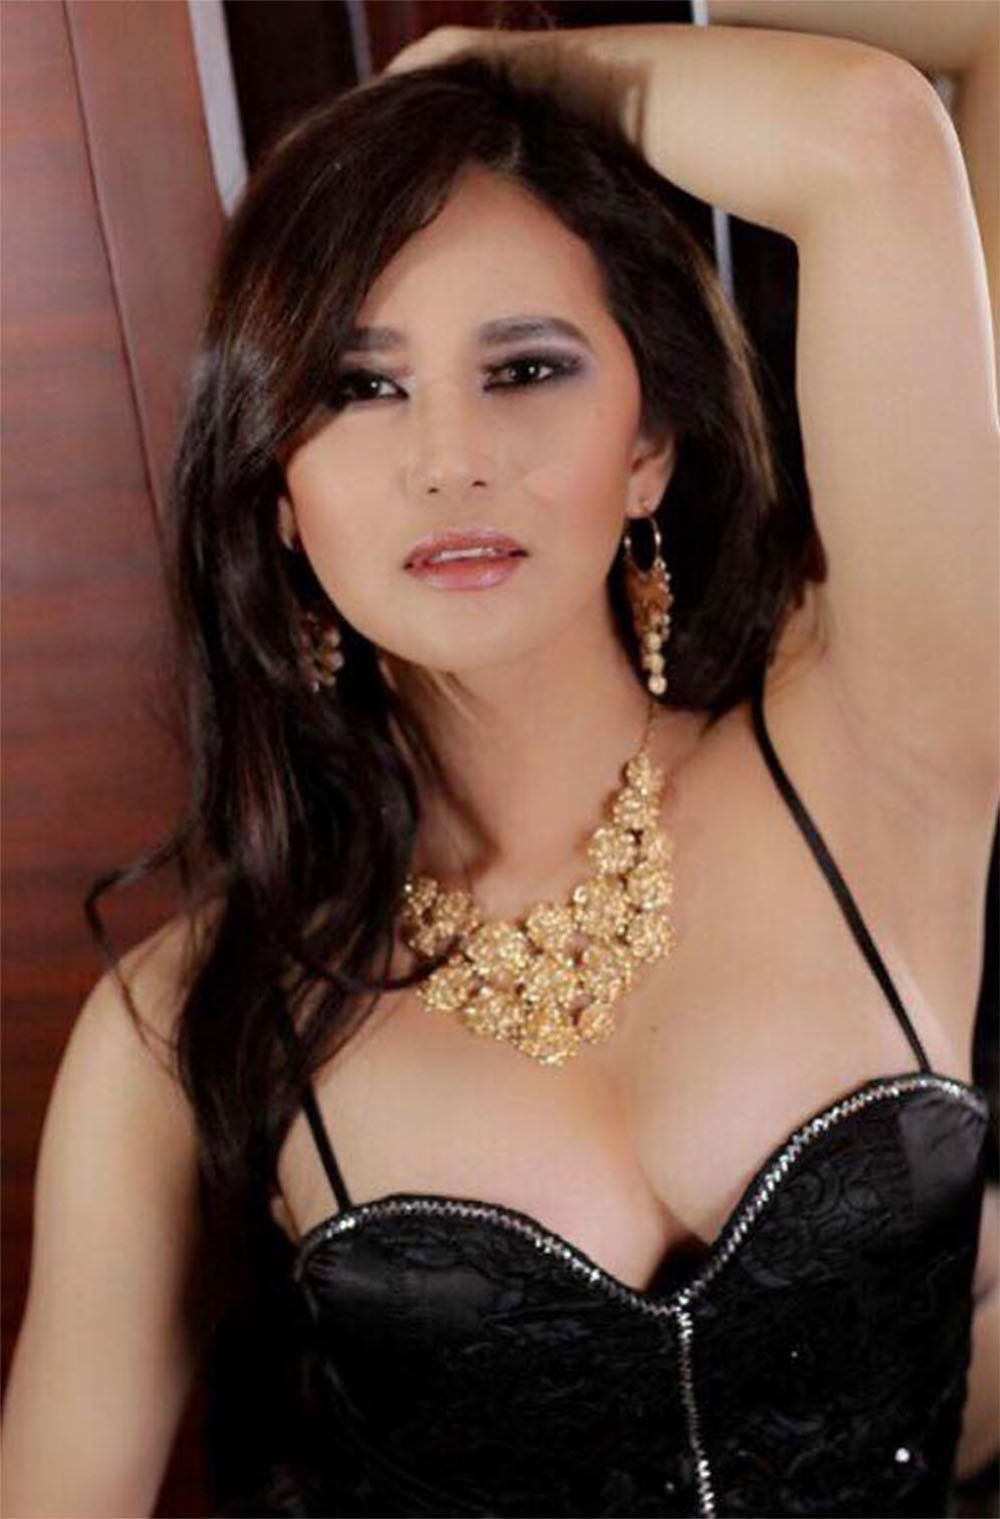 billig escort copenhagen asian massage